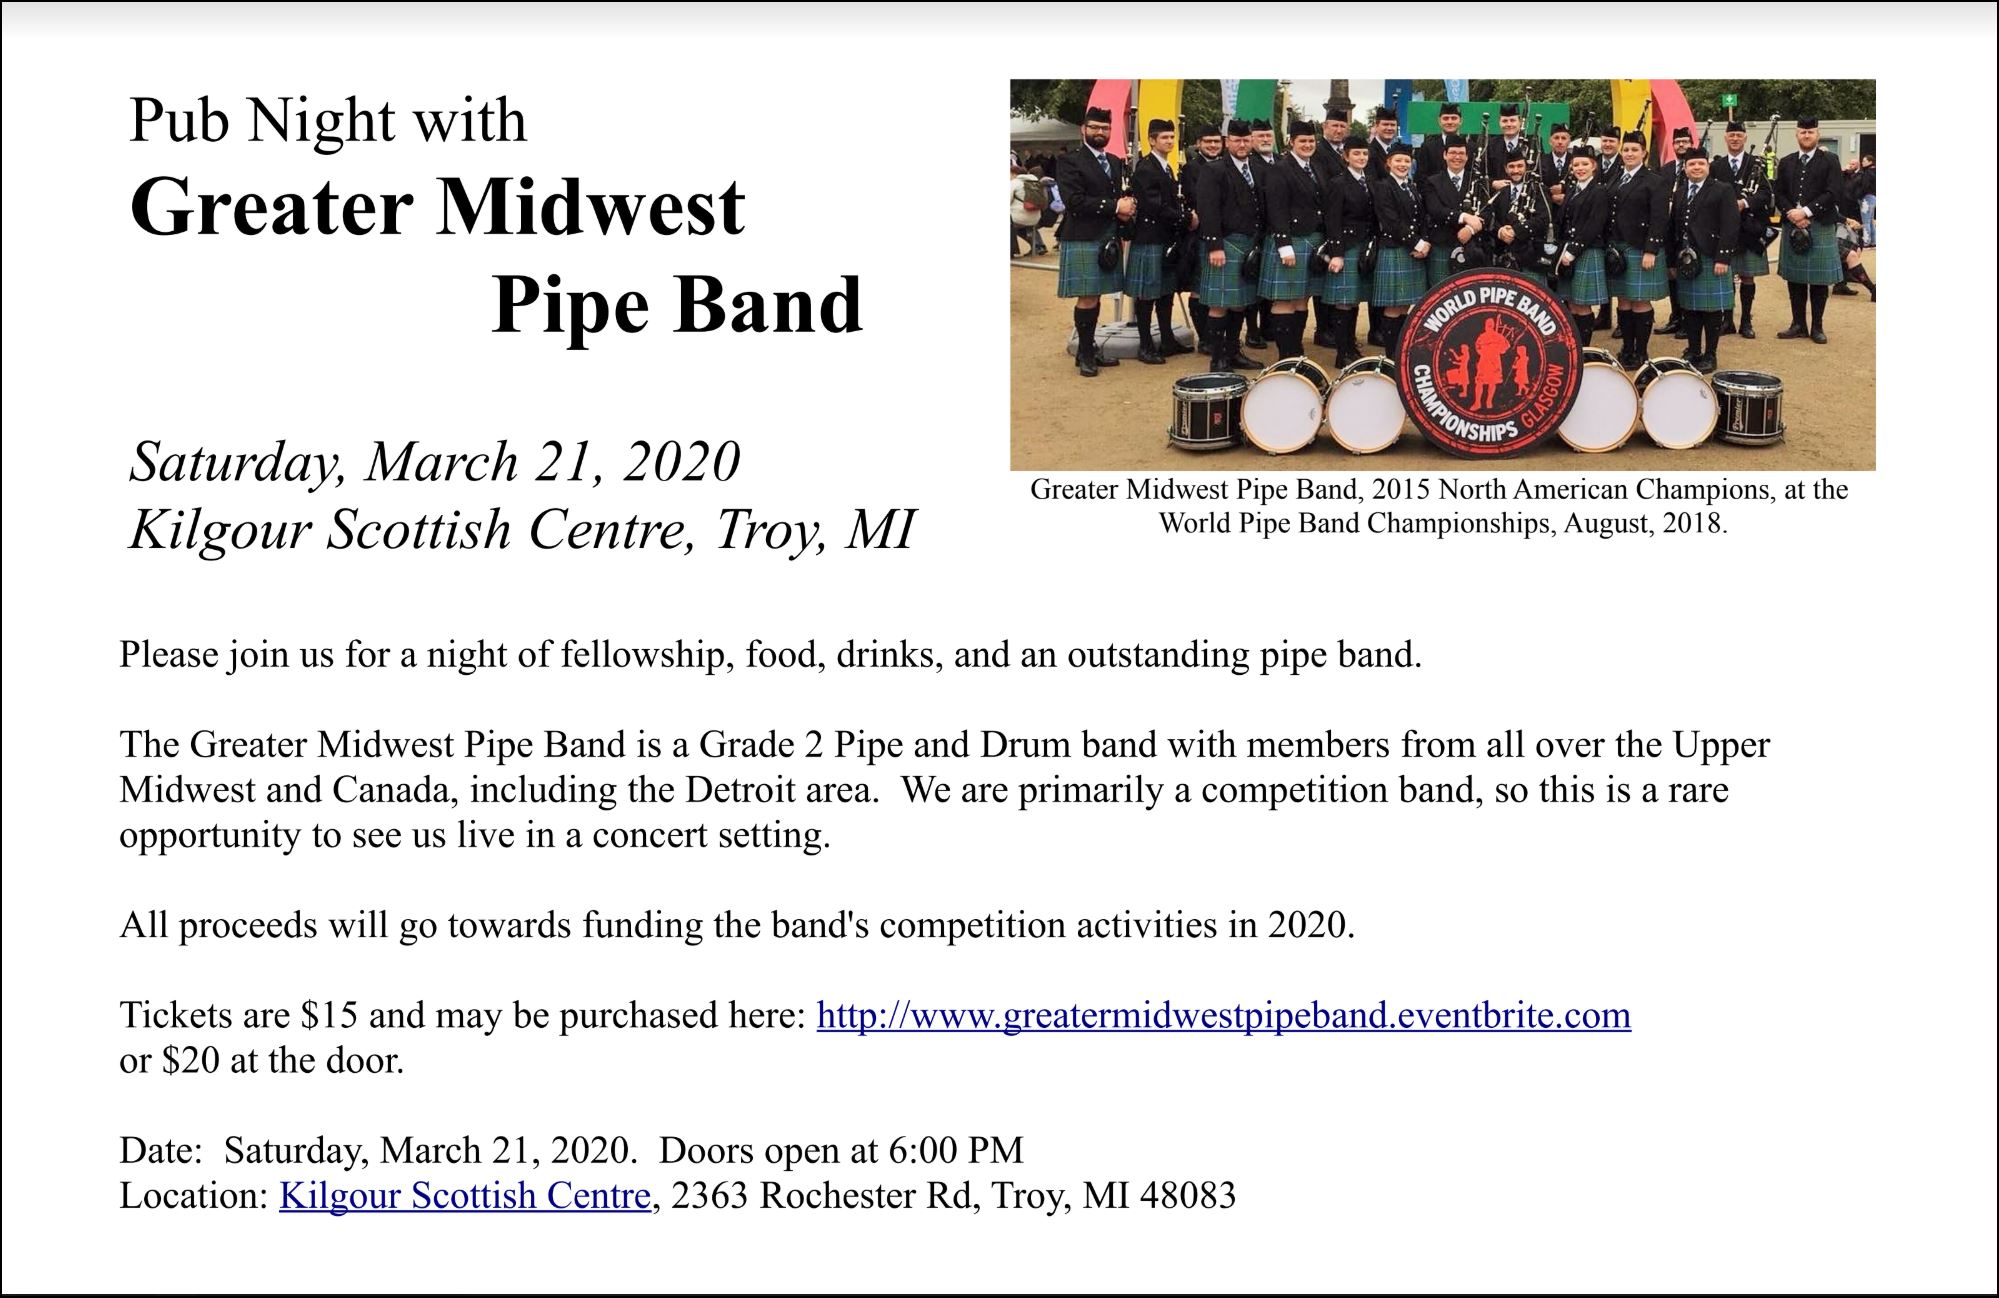 Greater-Midwest-Pipe-Band-Pub-Night-2020-03-21